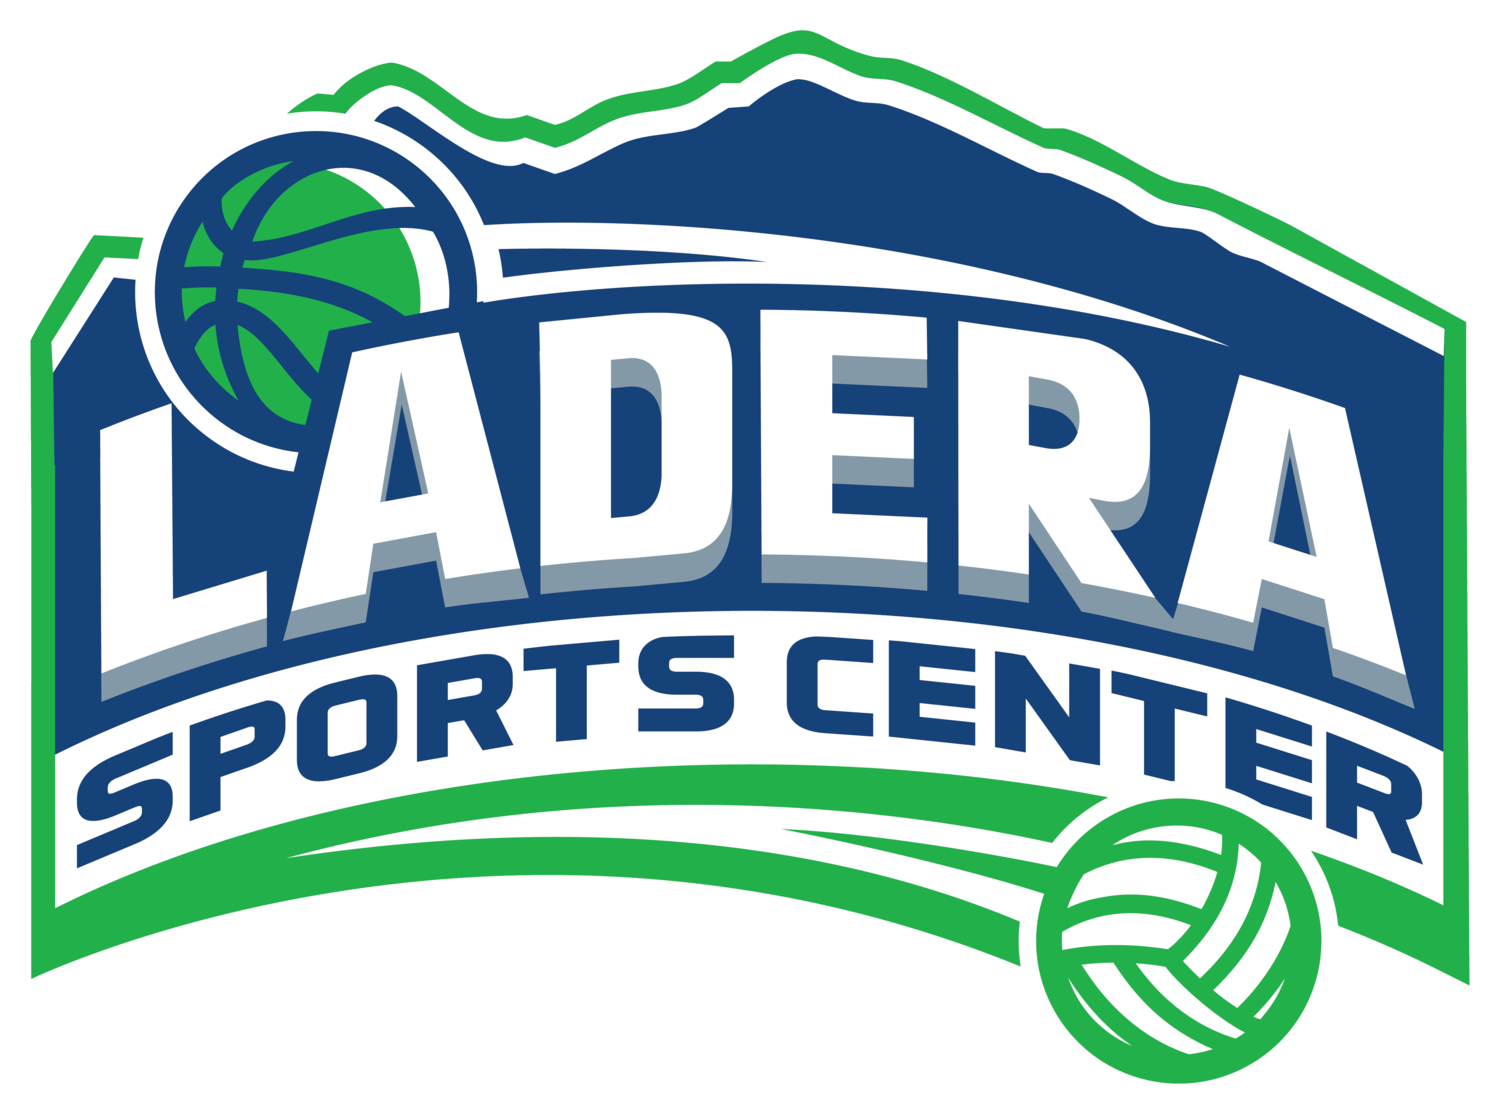 Ladera Sport Center logo